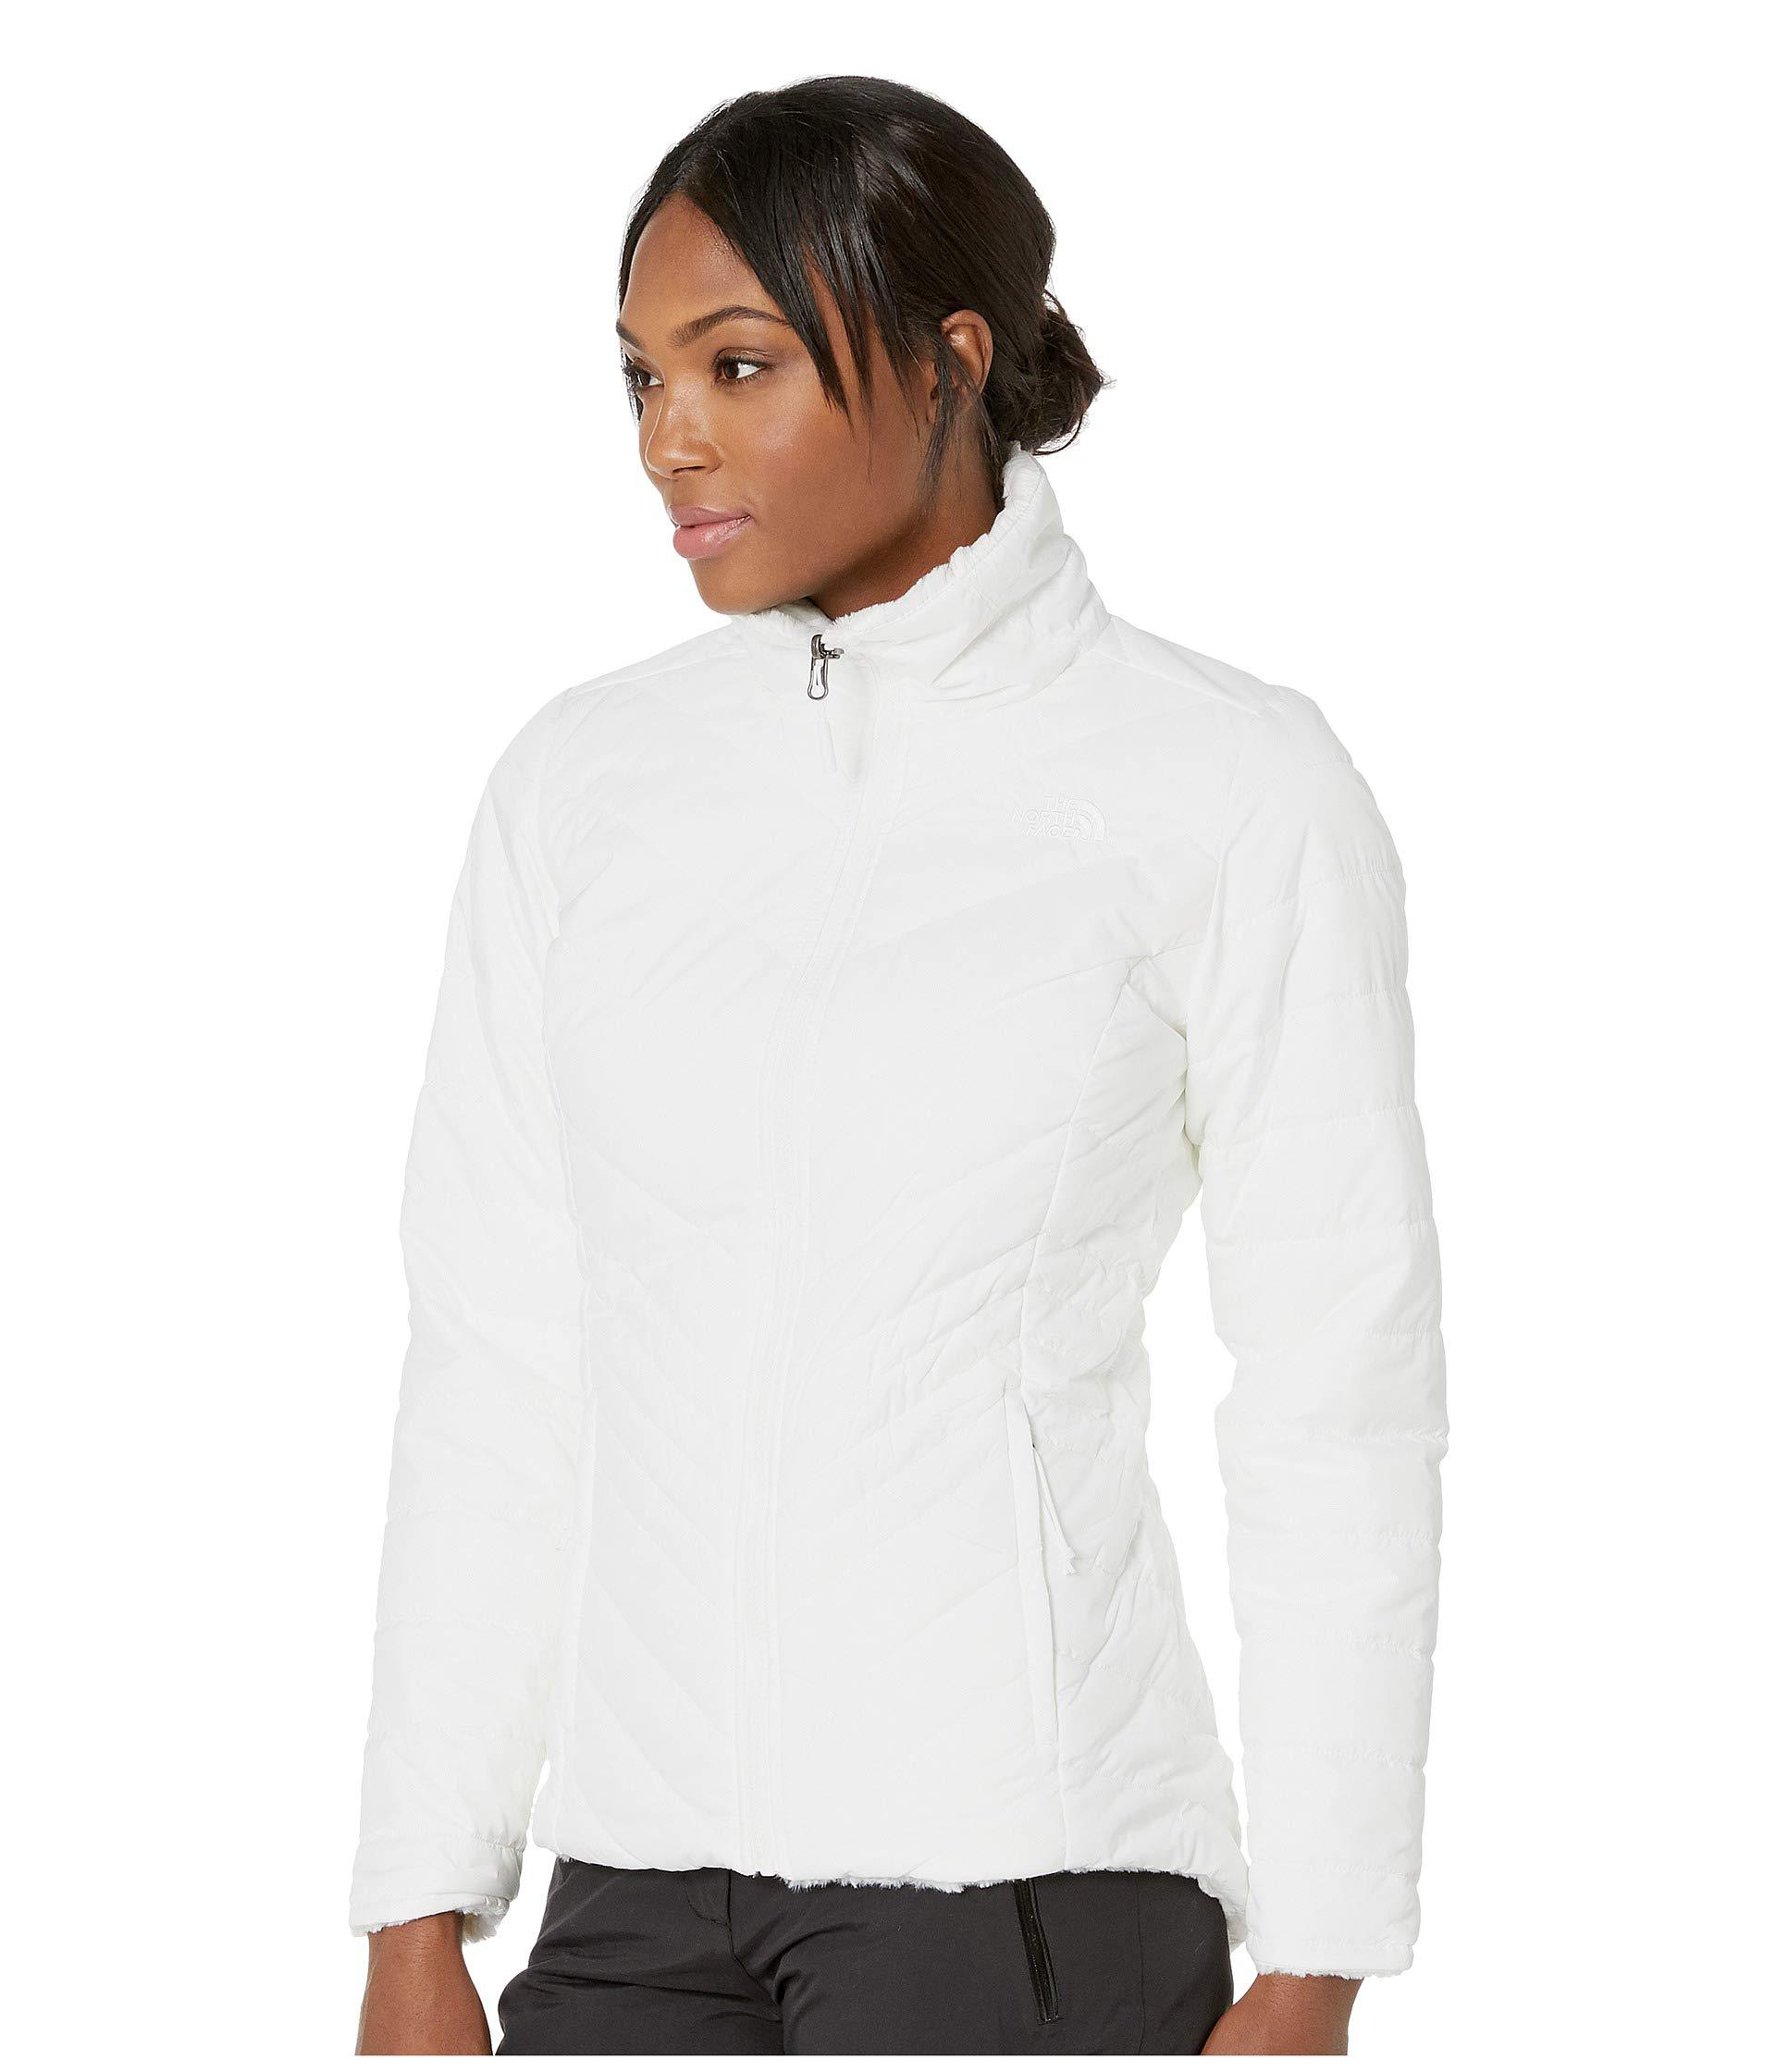 Lyst - The North Face Mossbud Insulated Reversible Jacket (asphalt ... e4d266337